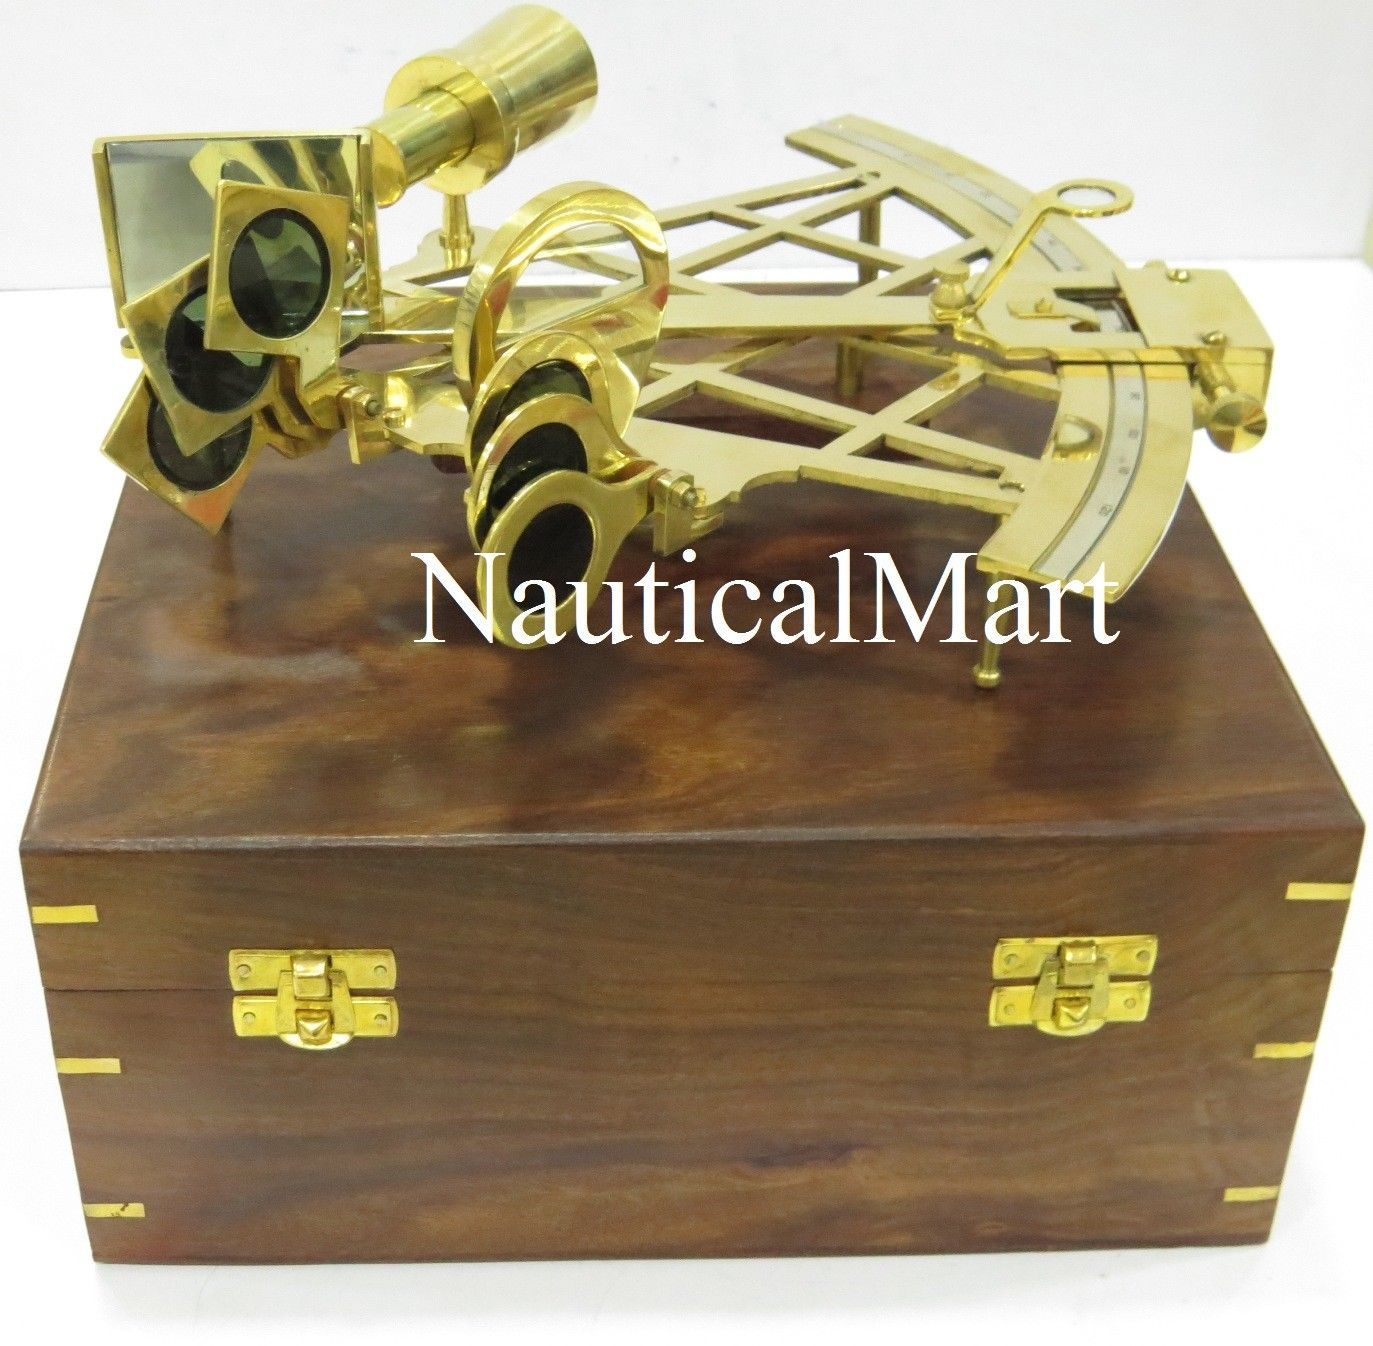 Nautical Marine Solid Brass Sextant With Brown Wooden Box Collectible Maritime